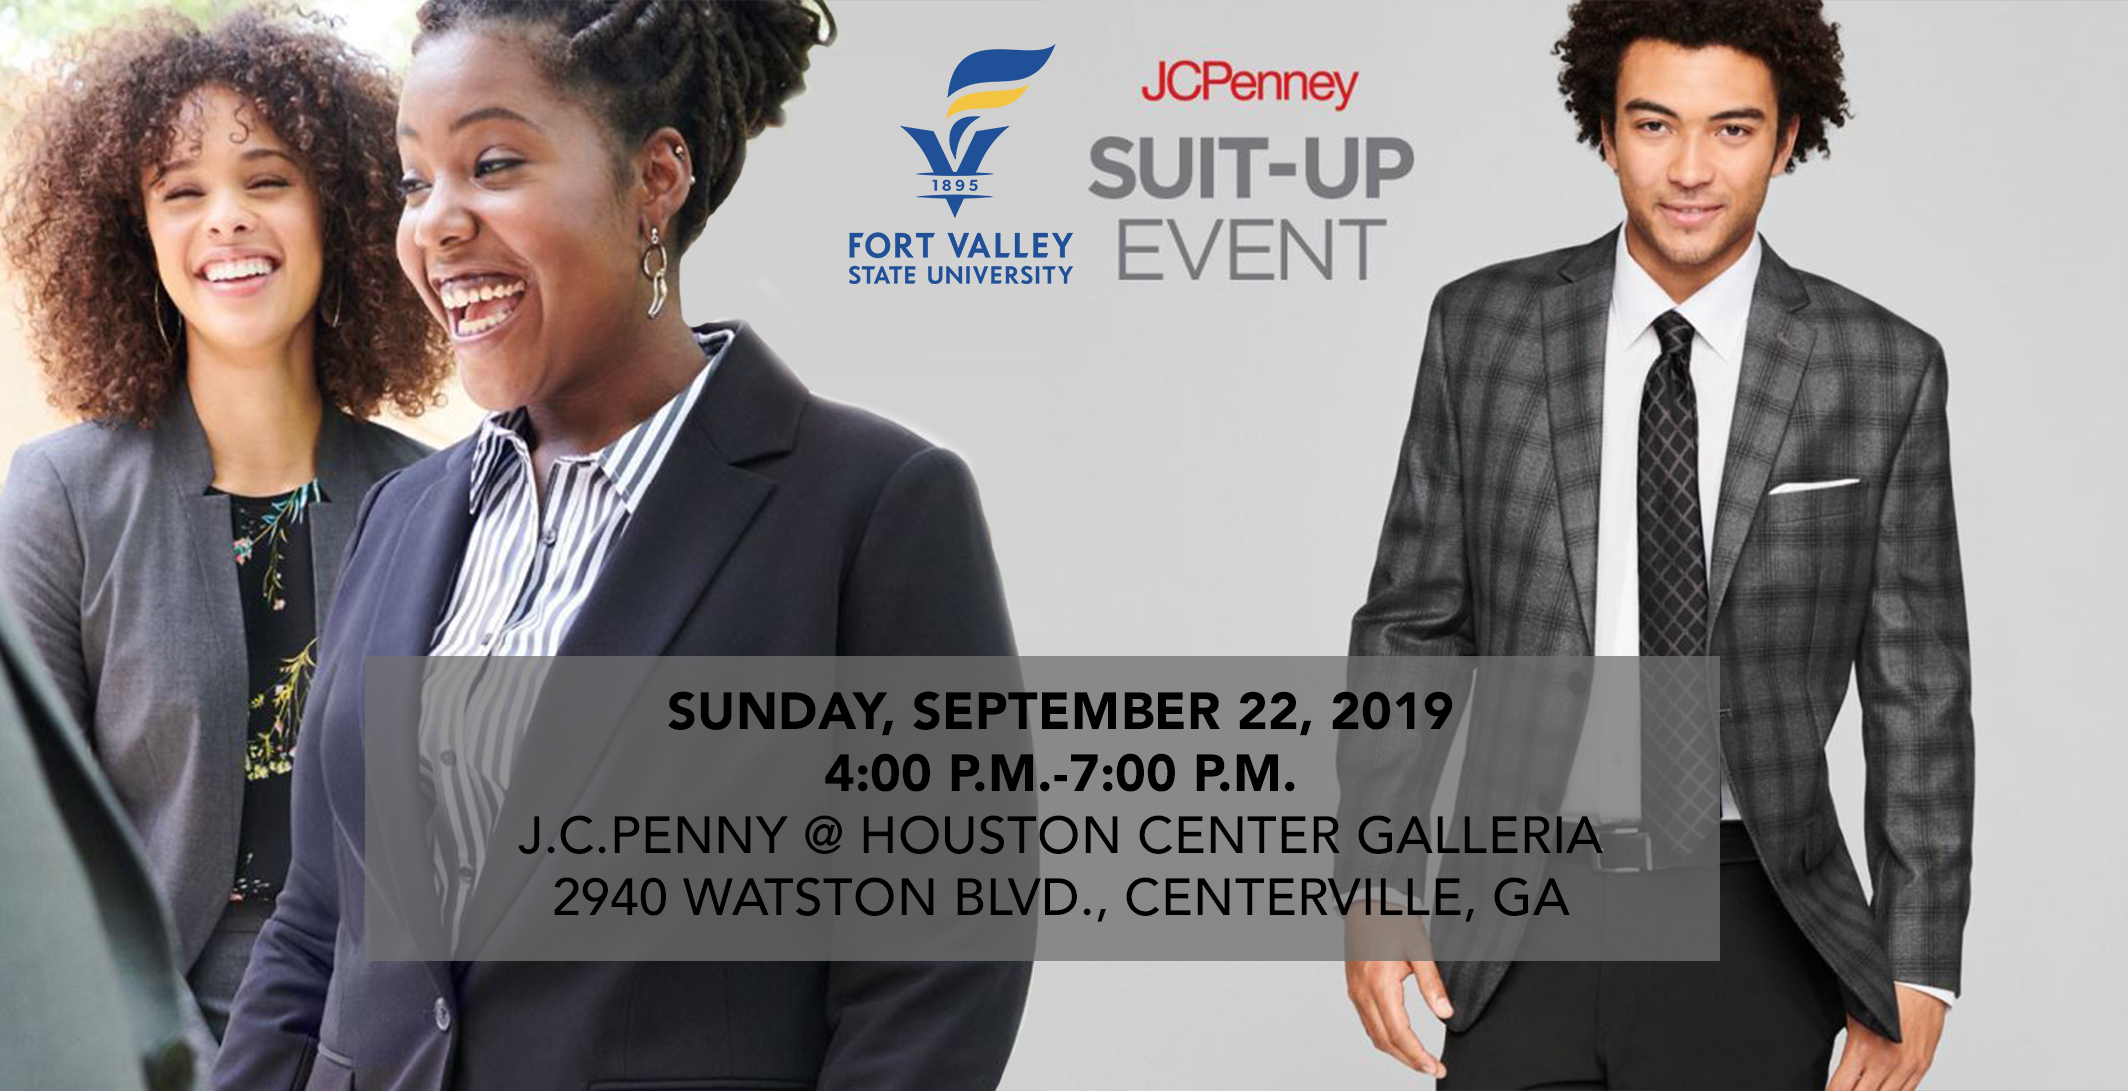 Suit Up - Fort Valley State University